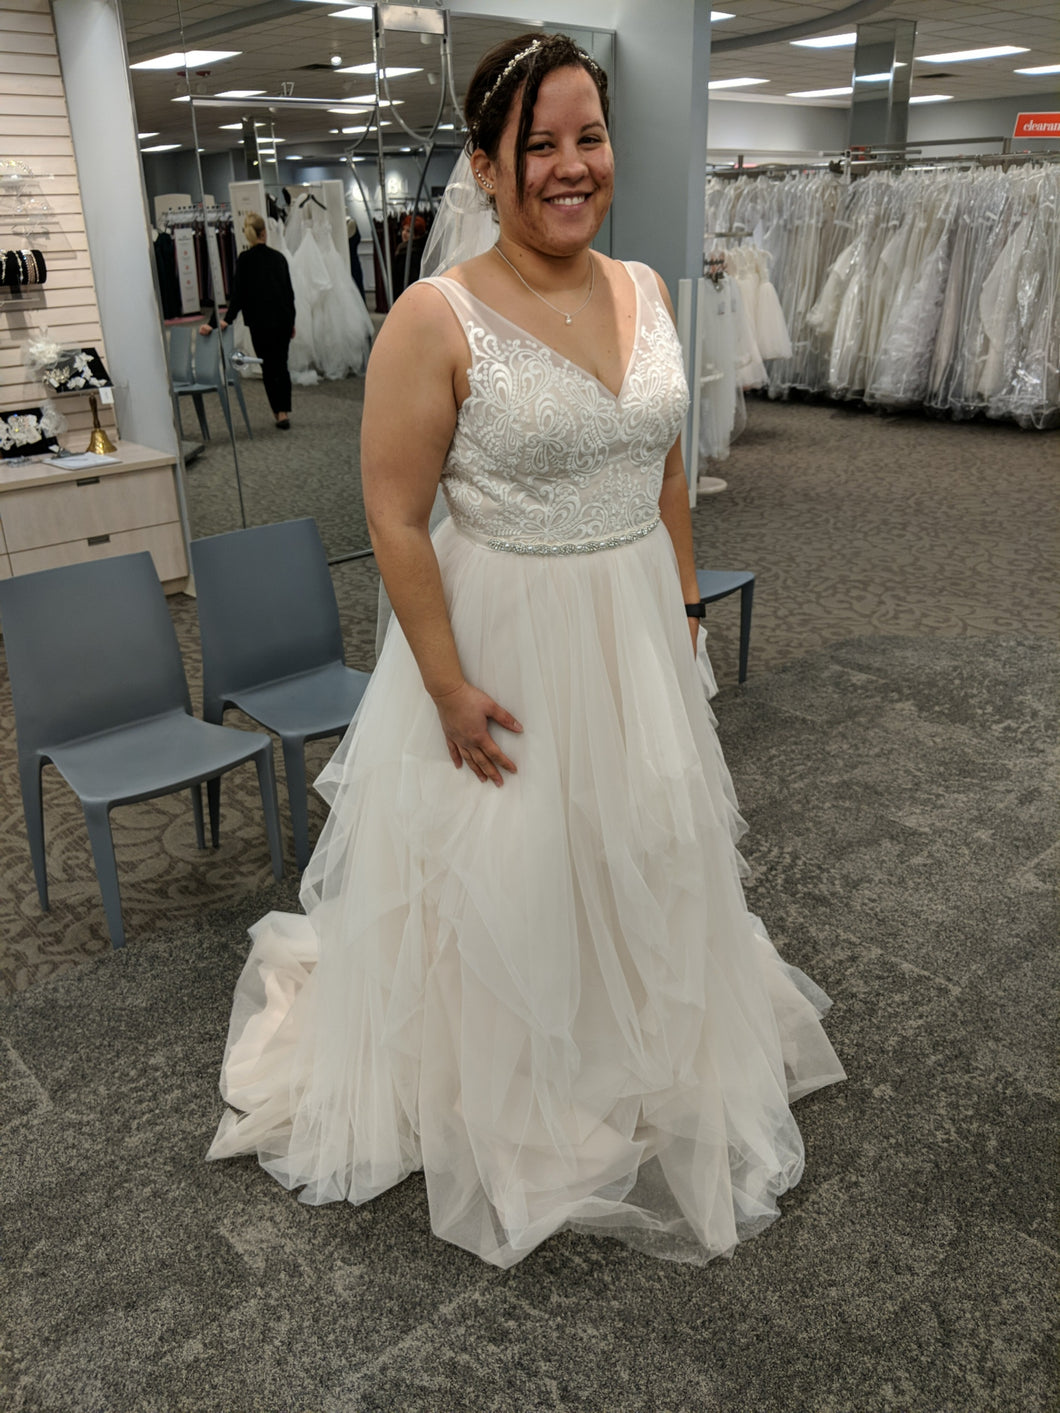 Galina 'Tulle Tank V-Neck' size 10 new wedding dress front view on bride